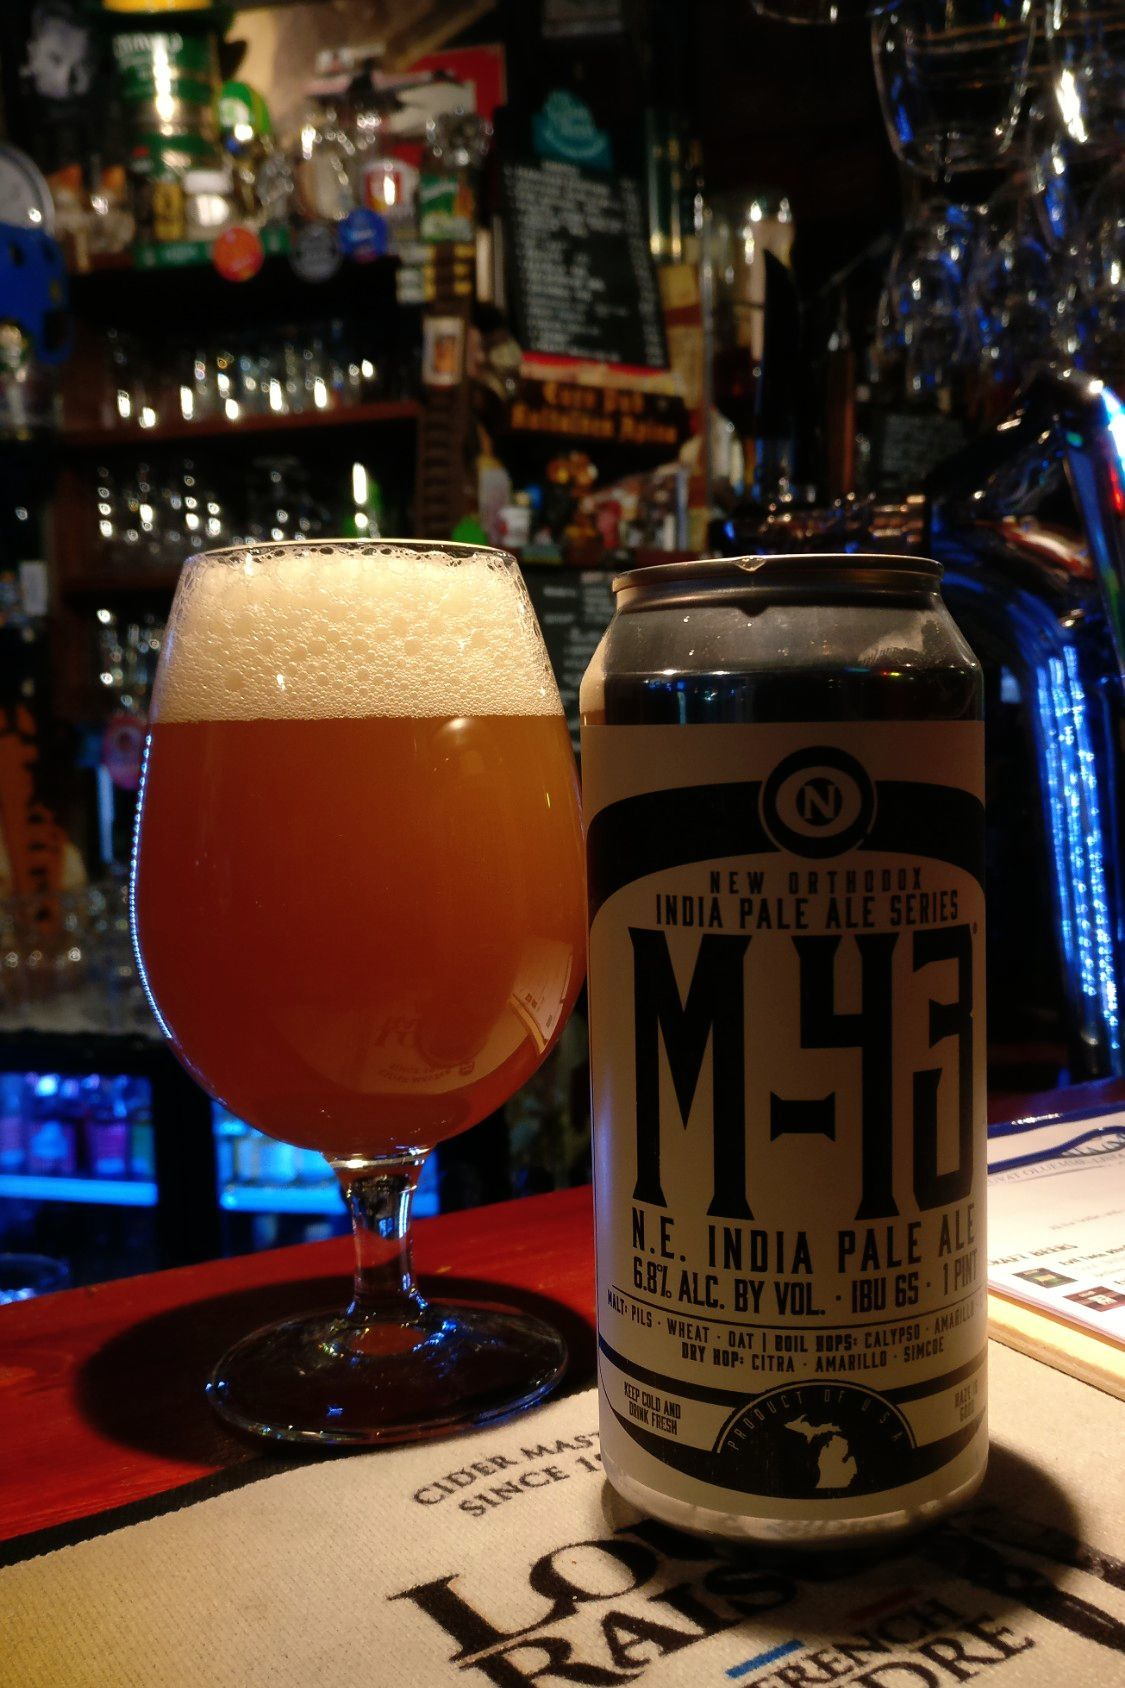 Untappd-arvio: M-43 N.E. India Pale Ale  (Old Nation Brewing Co.)